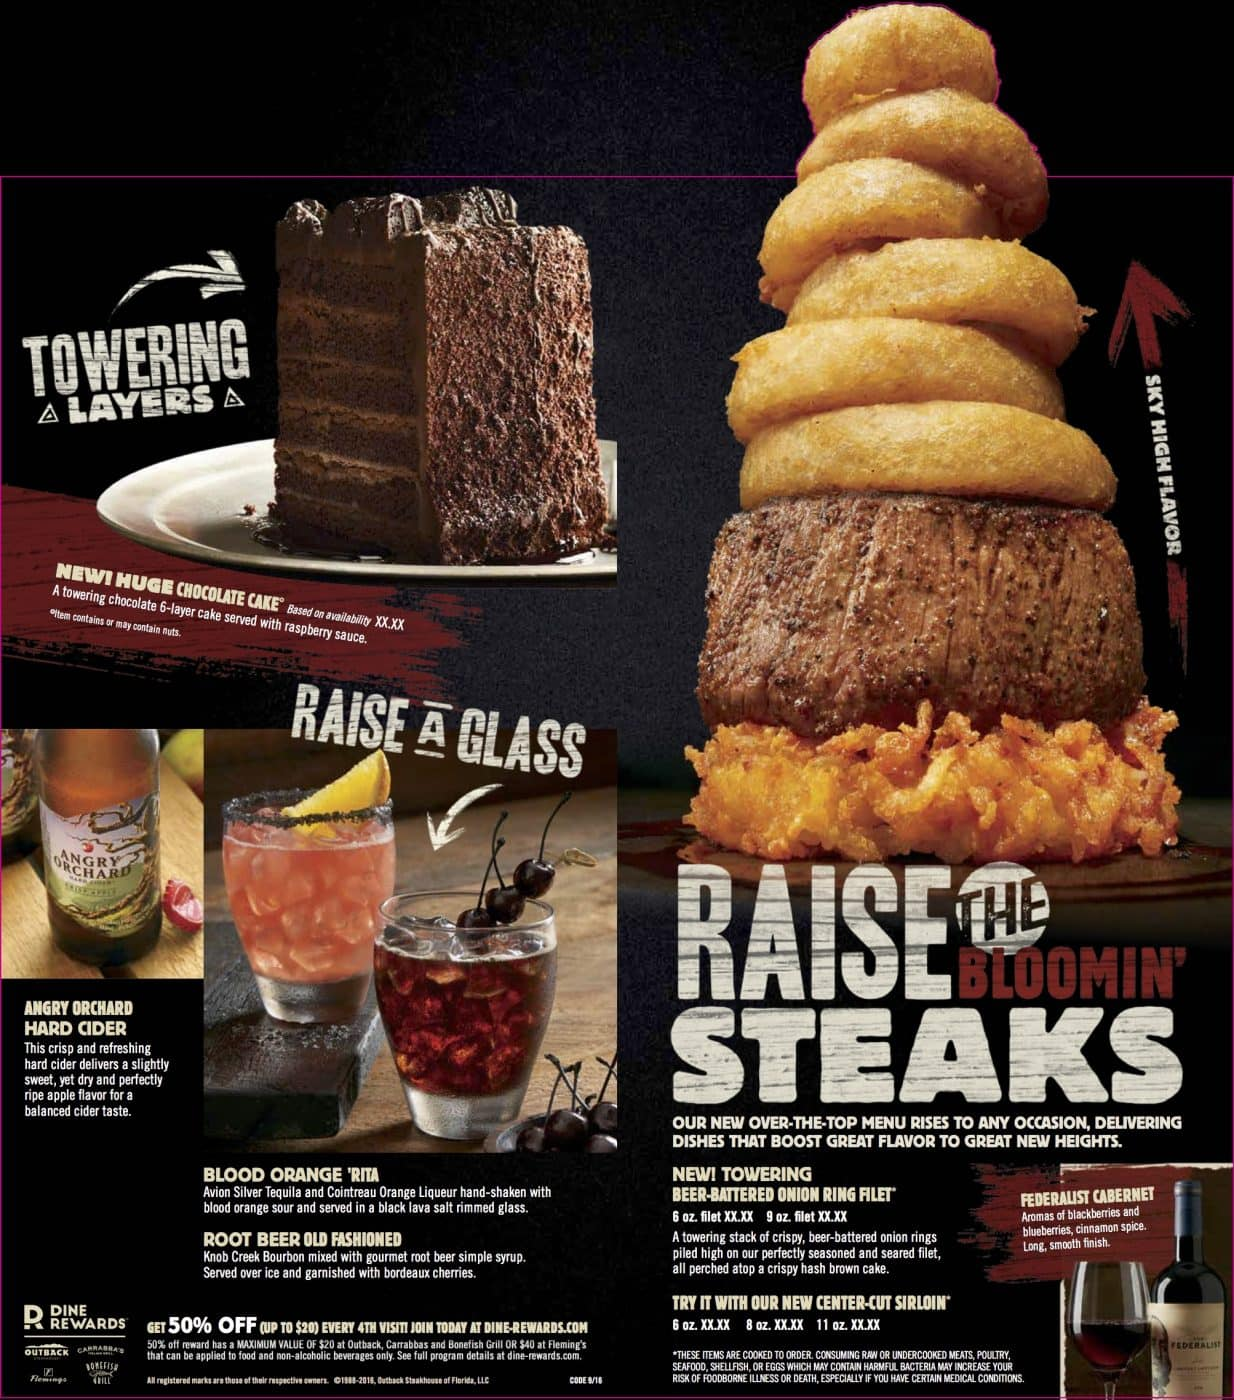 raise-the-steaks-lto16-copy